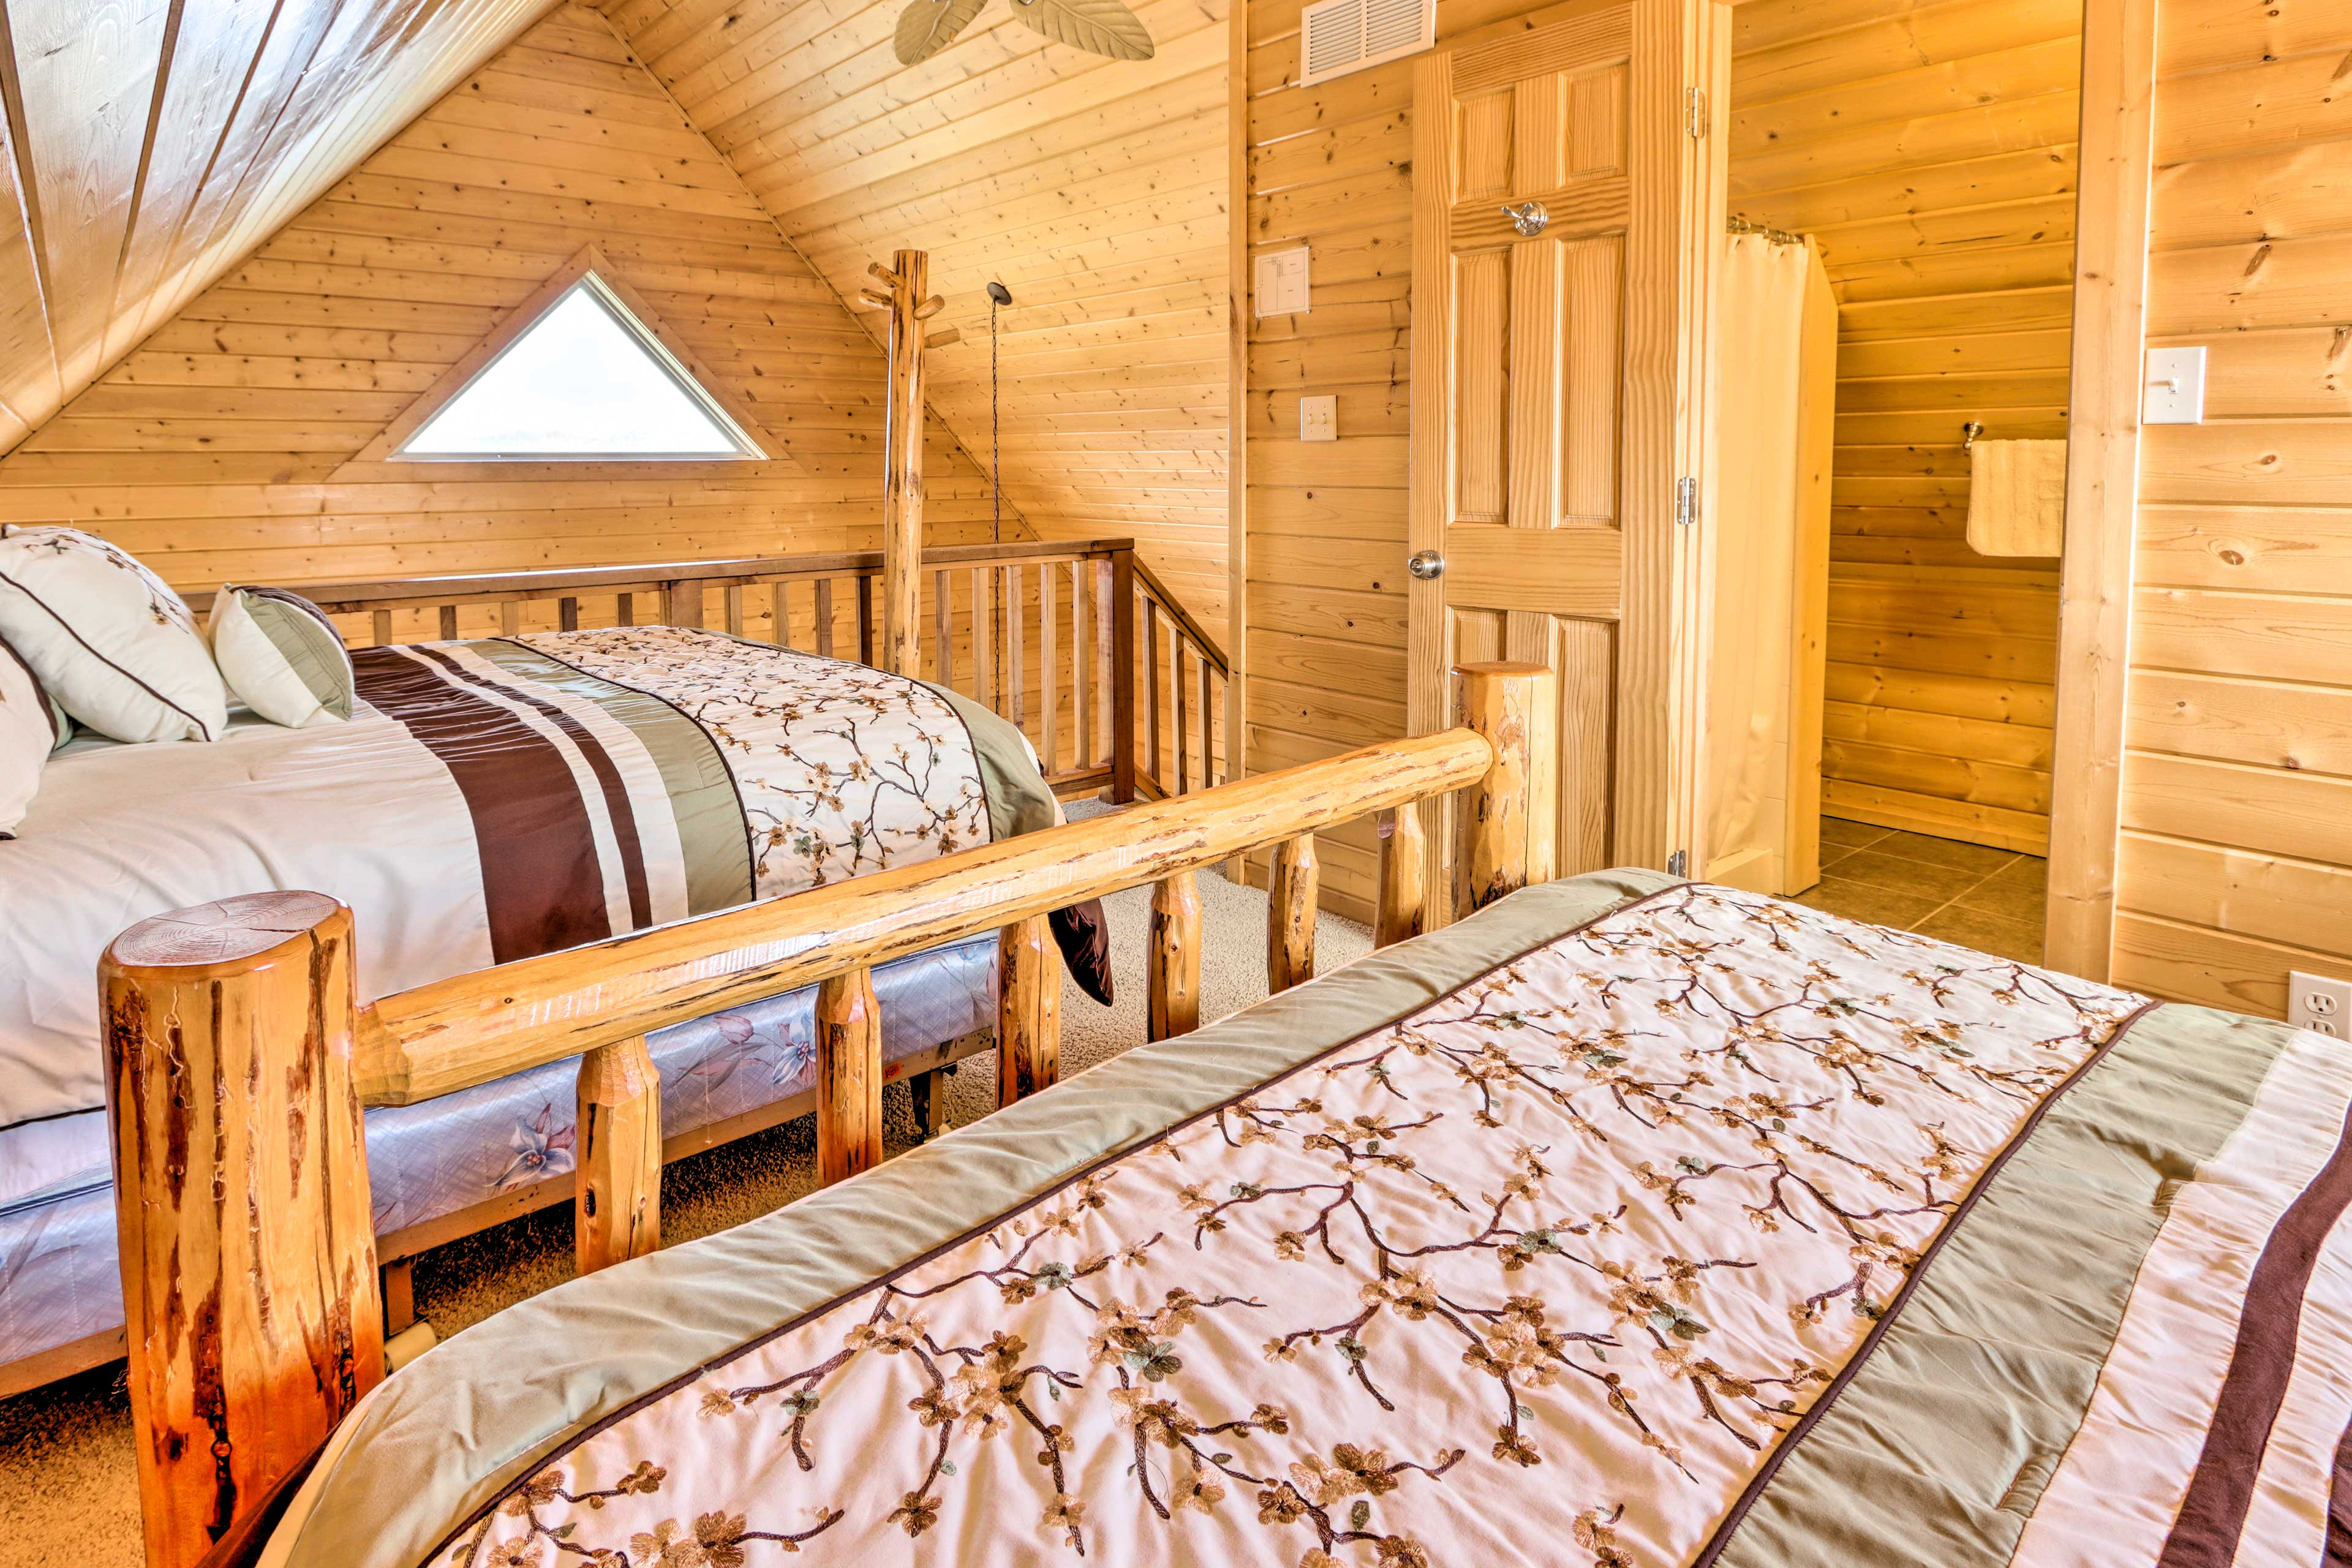 Up to 4 guests can share these 2 beds.